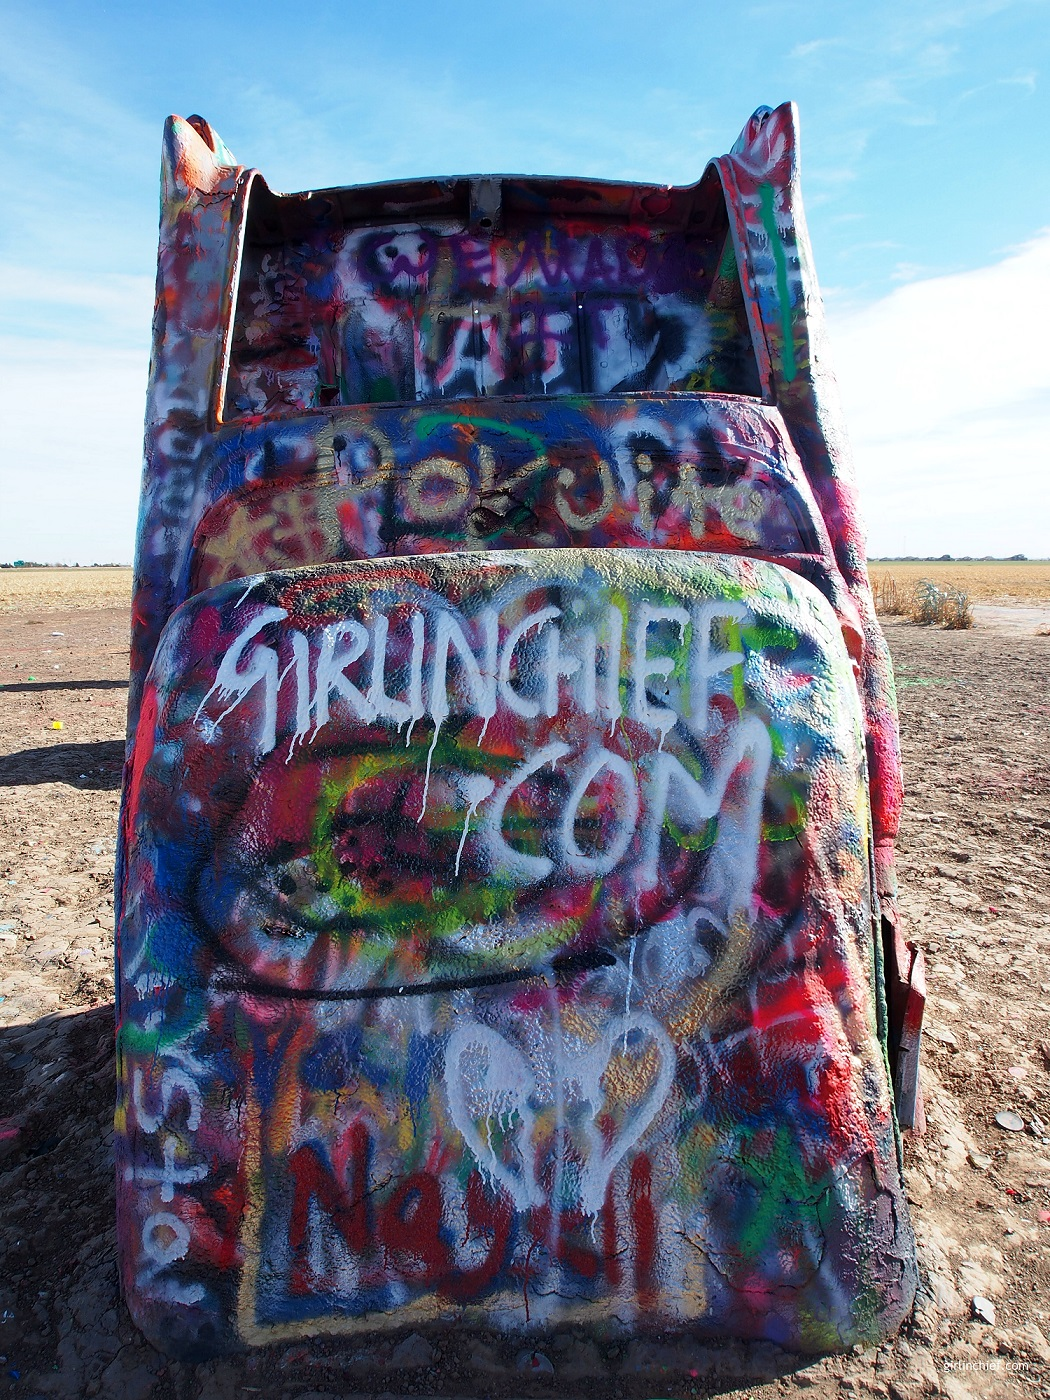 cadillac-ranch-amarillo-texas-girlinchief-4